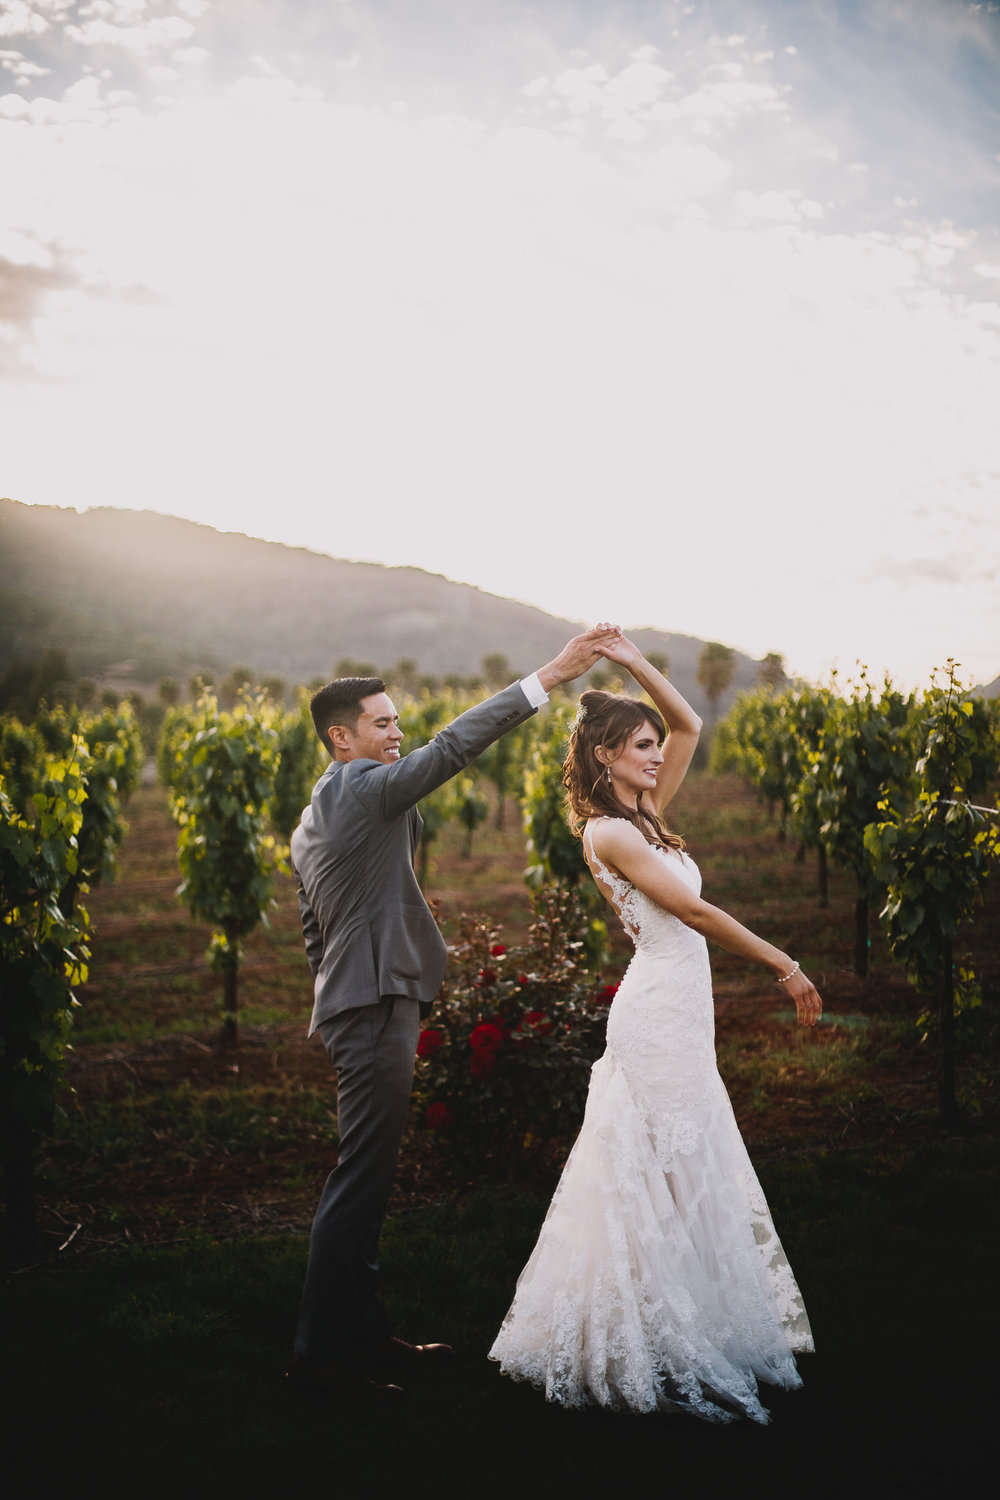 Archer Inspired Photography Kirigin Cellars Gilroy California SoCal Orange County Los Angeles Long Beach Lifestyle Wedding Elopement Engagement Photographer-424.jpg